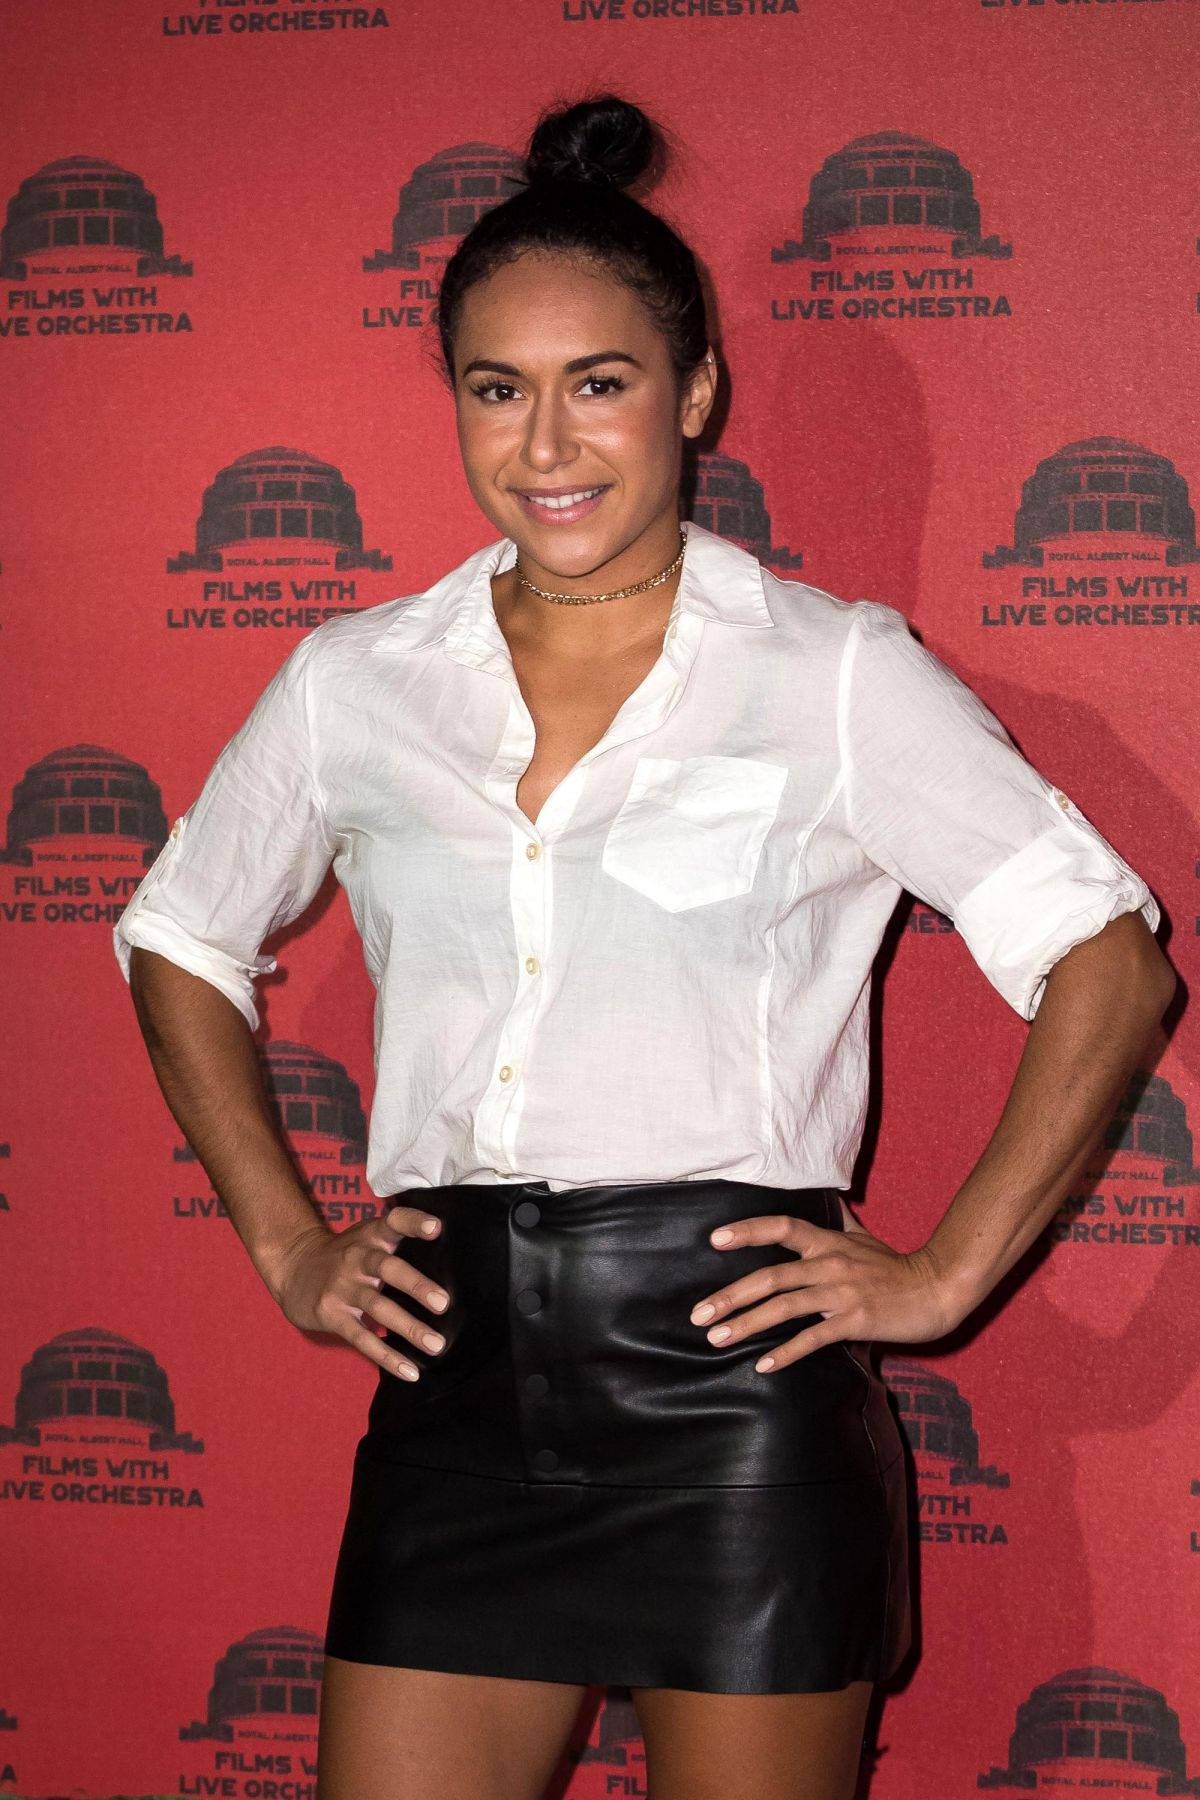 HEATHER WATSON at Royal Albert Hall in London 11/03/2016